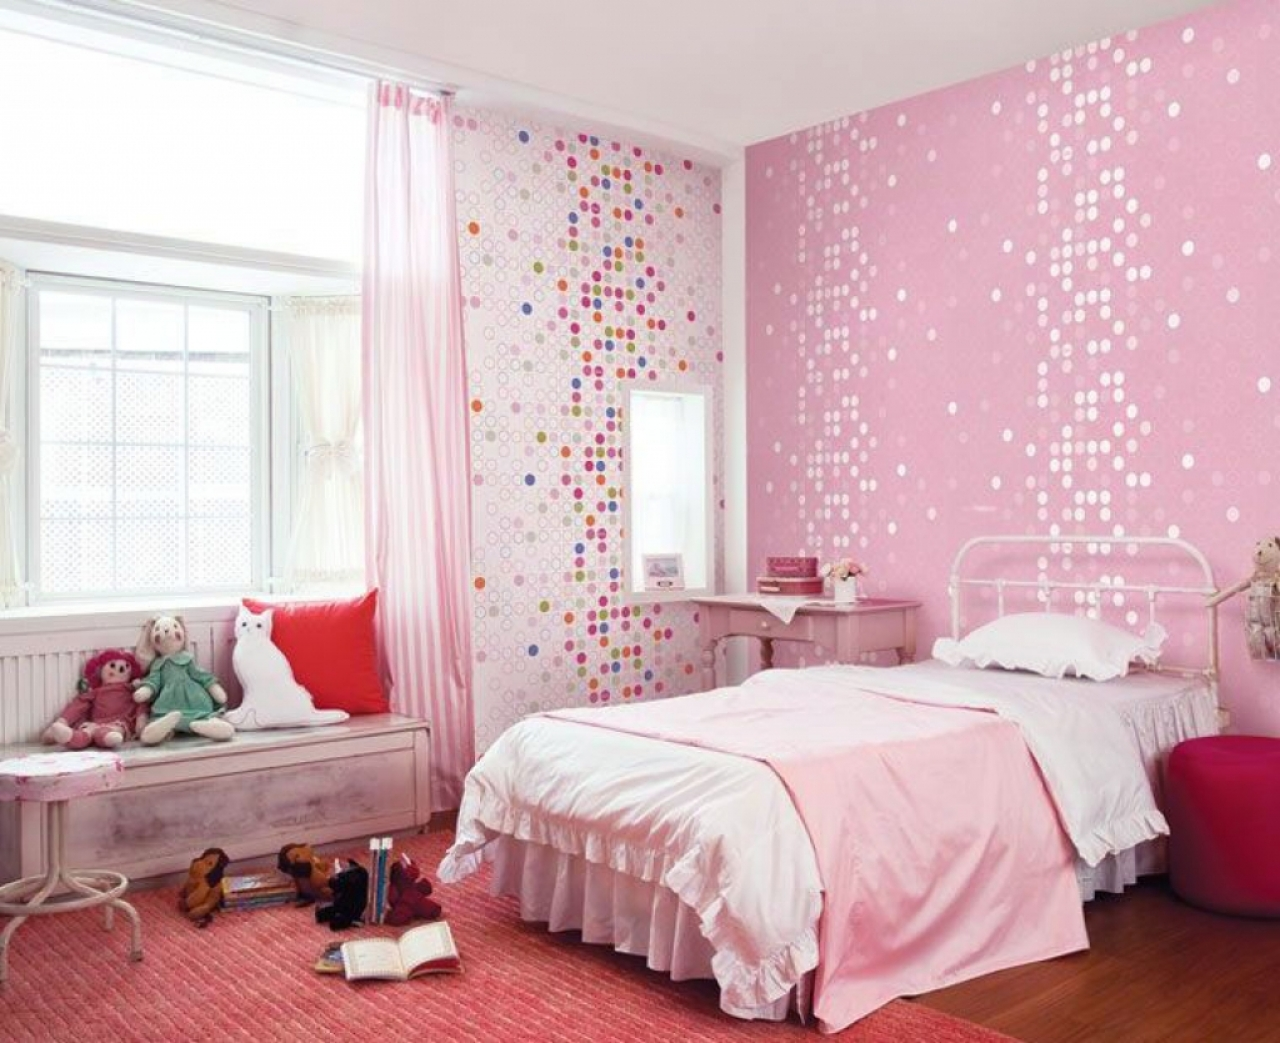 bedroom with pink walls hd wallpaper top 10 house interior design high definition 14476